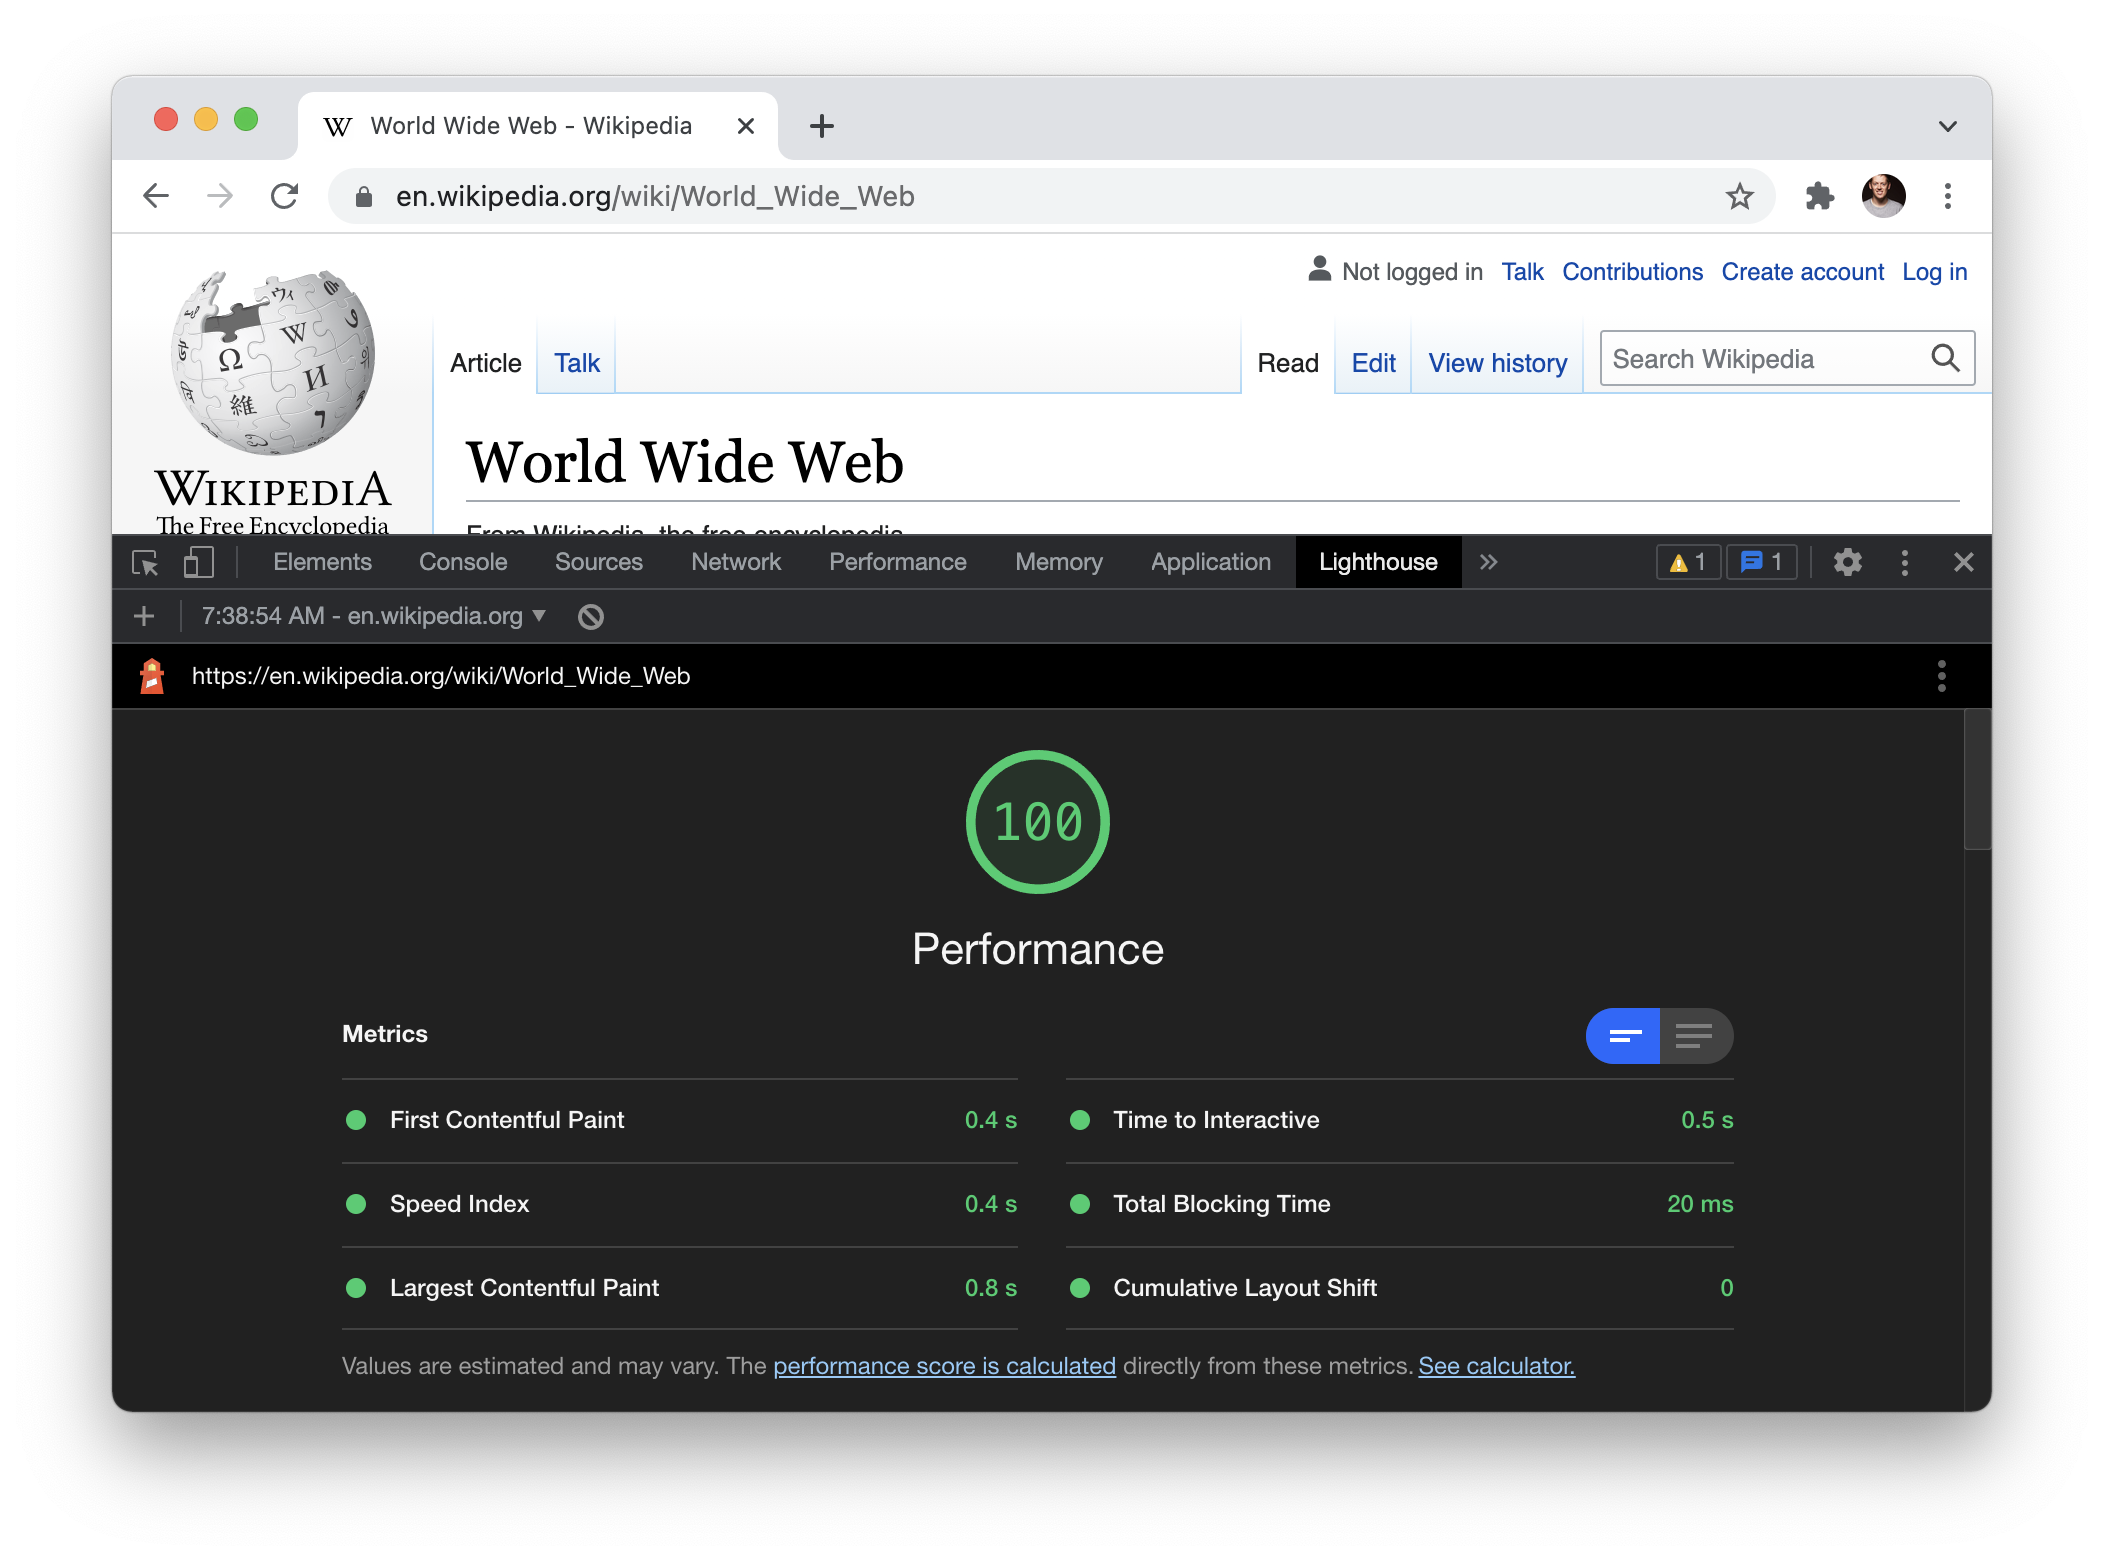 Screenshot of the World Wide Web entry on Wikipedia in Chrome with the Lighthouse dev tools open showing a performance score of 100.